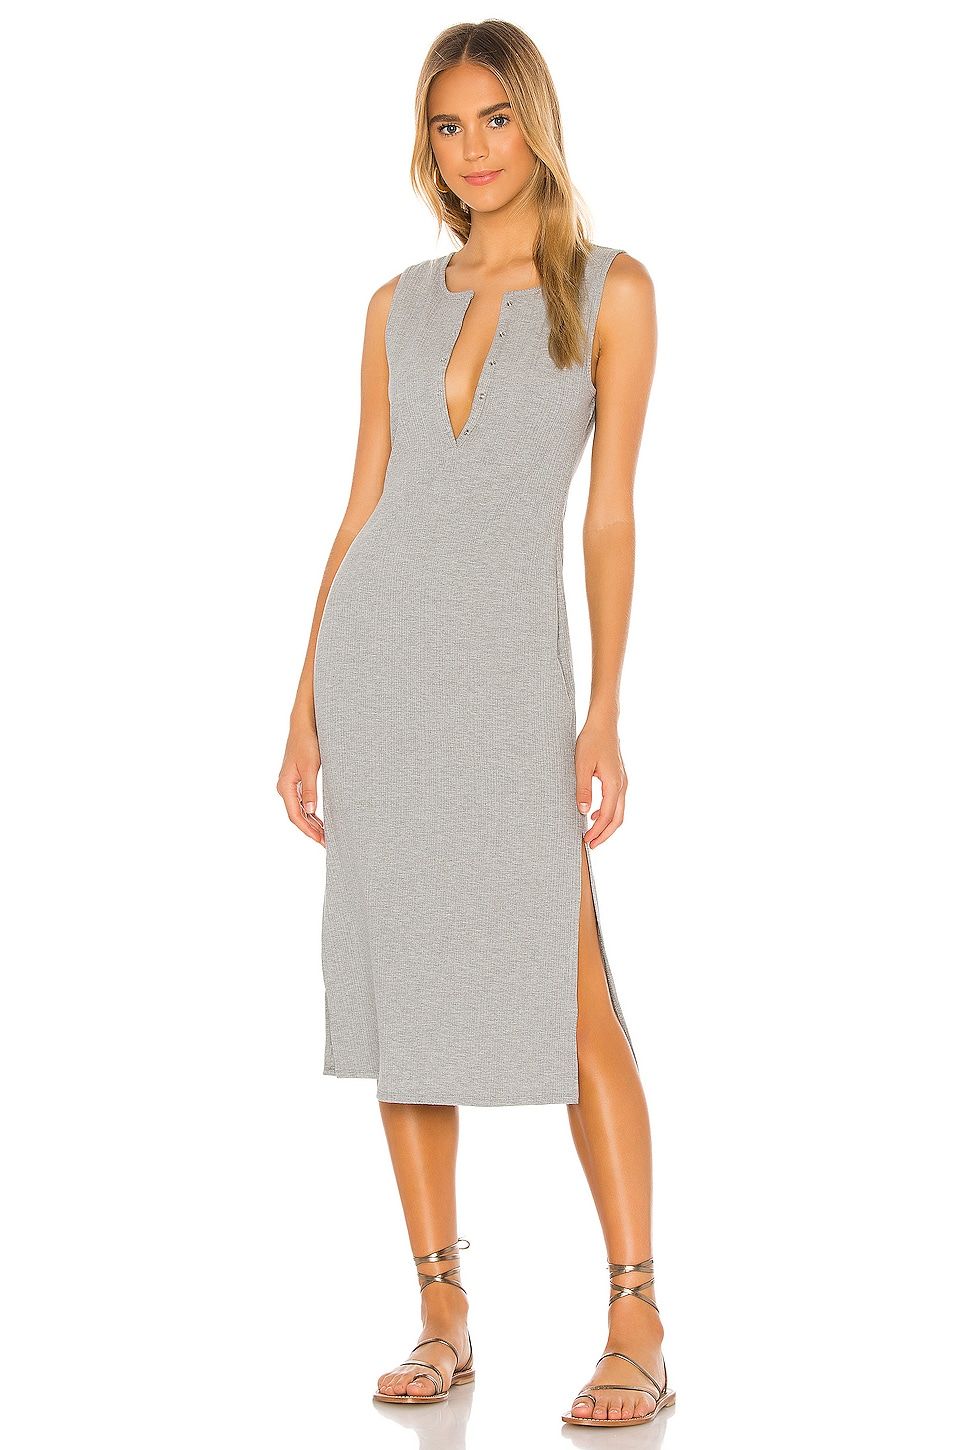 Day Shirt Sleeveless Dress             BCBGeneration                                                                                                       CA$ 105.38 19